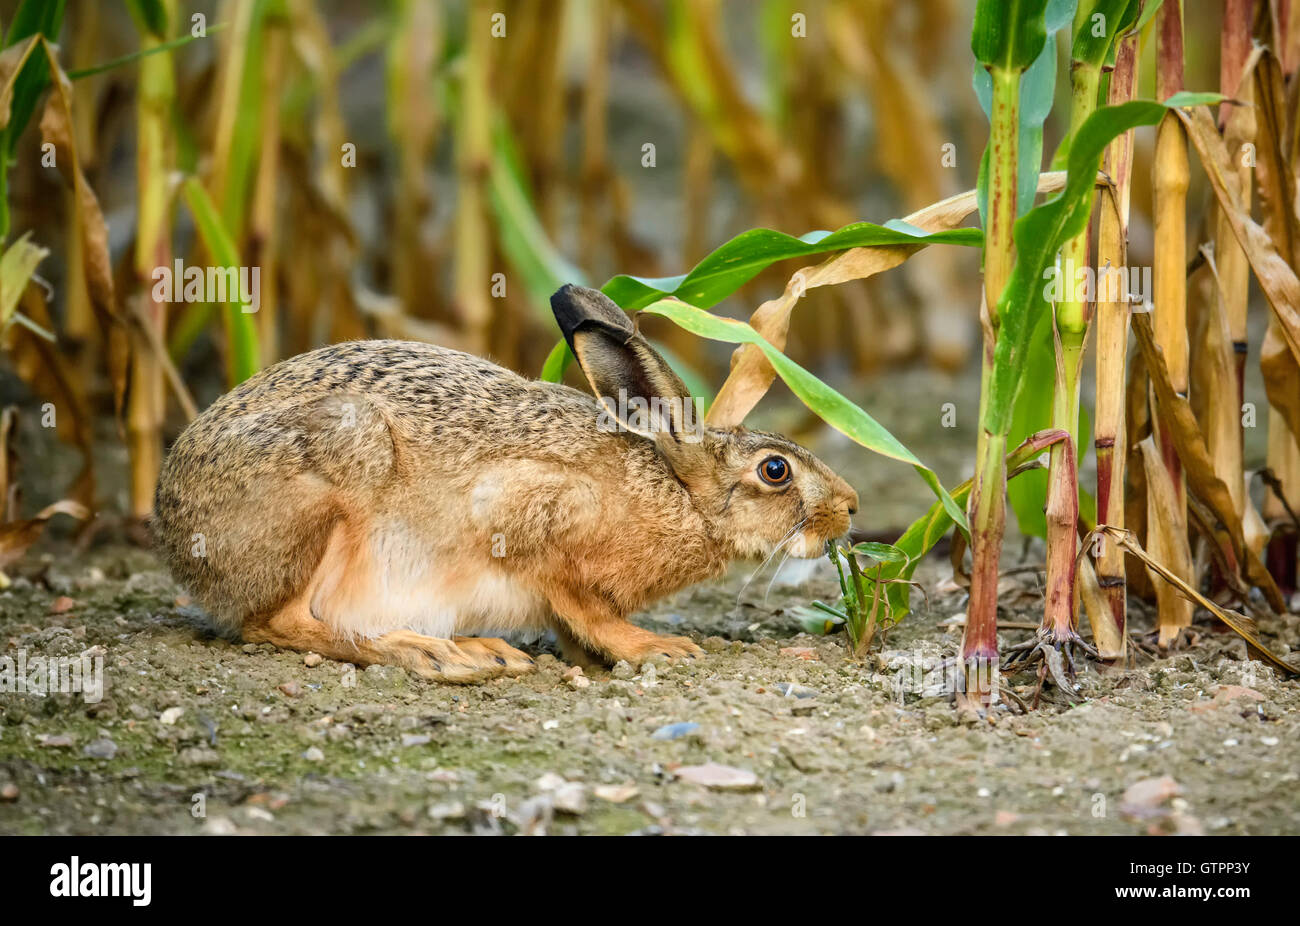 Brown Hare (Lepus europaeus) checking out the leaves on a sweetcorn plant. - Stock Image